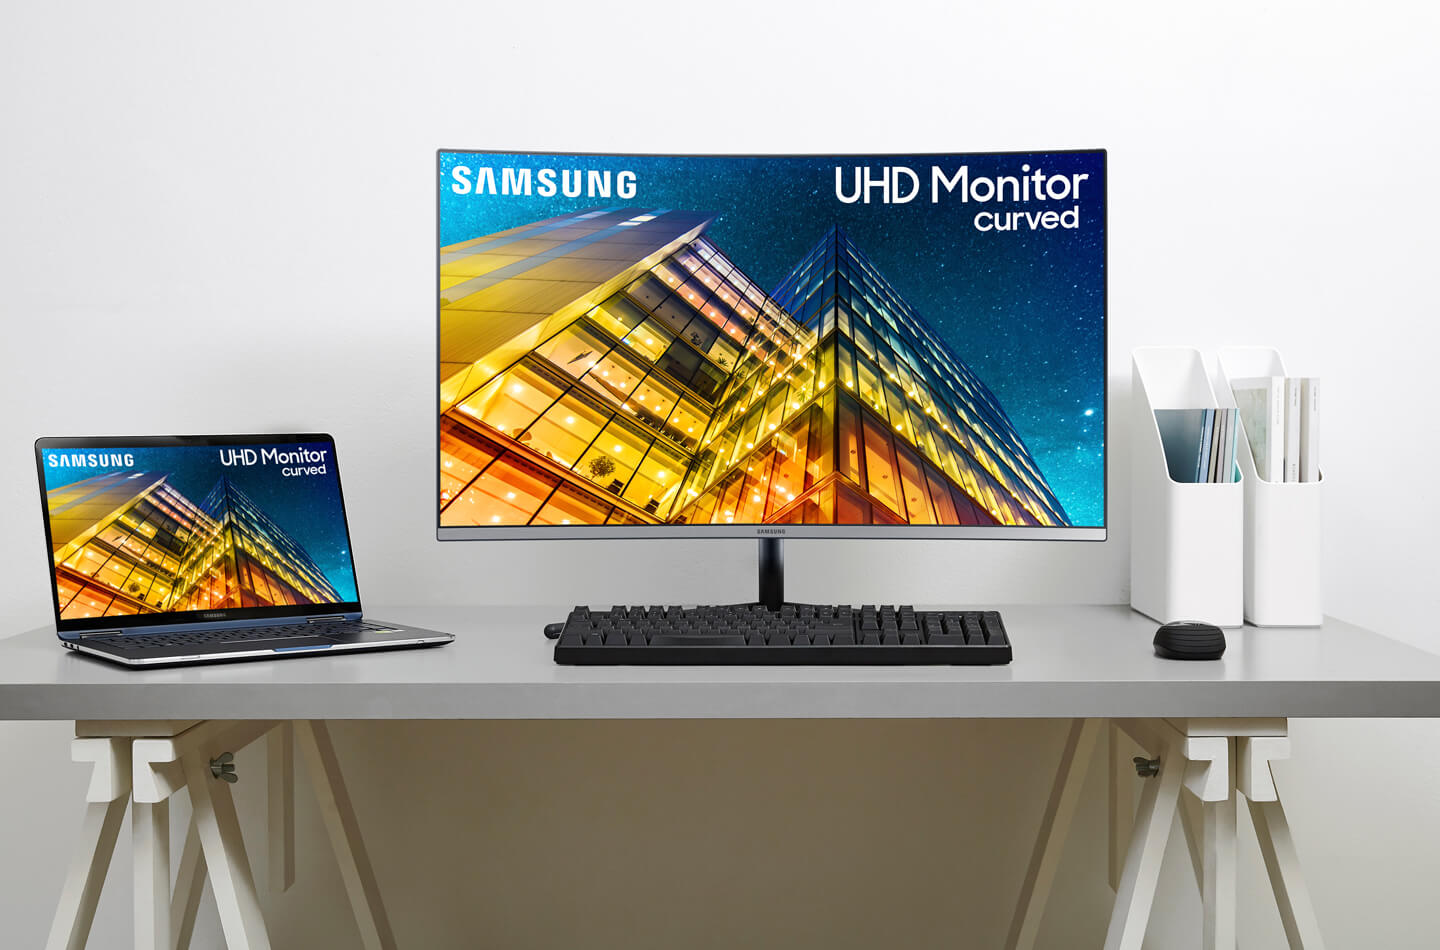 Samsung Curved 4K UHD monitor